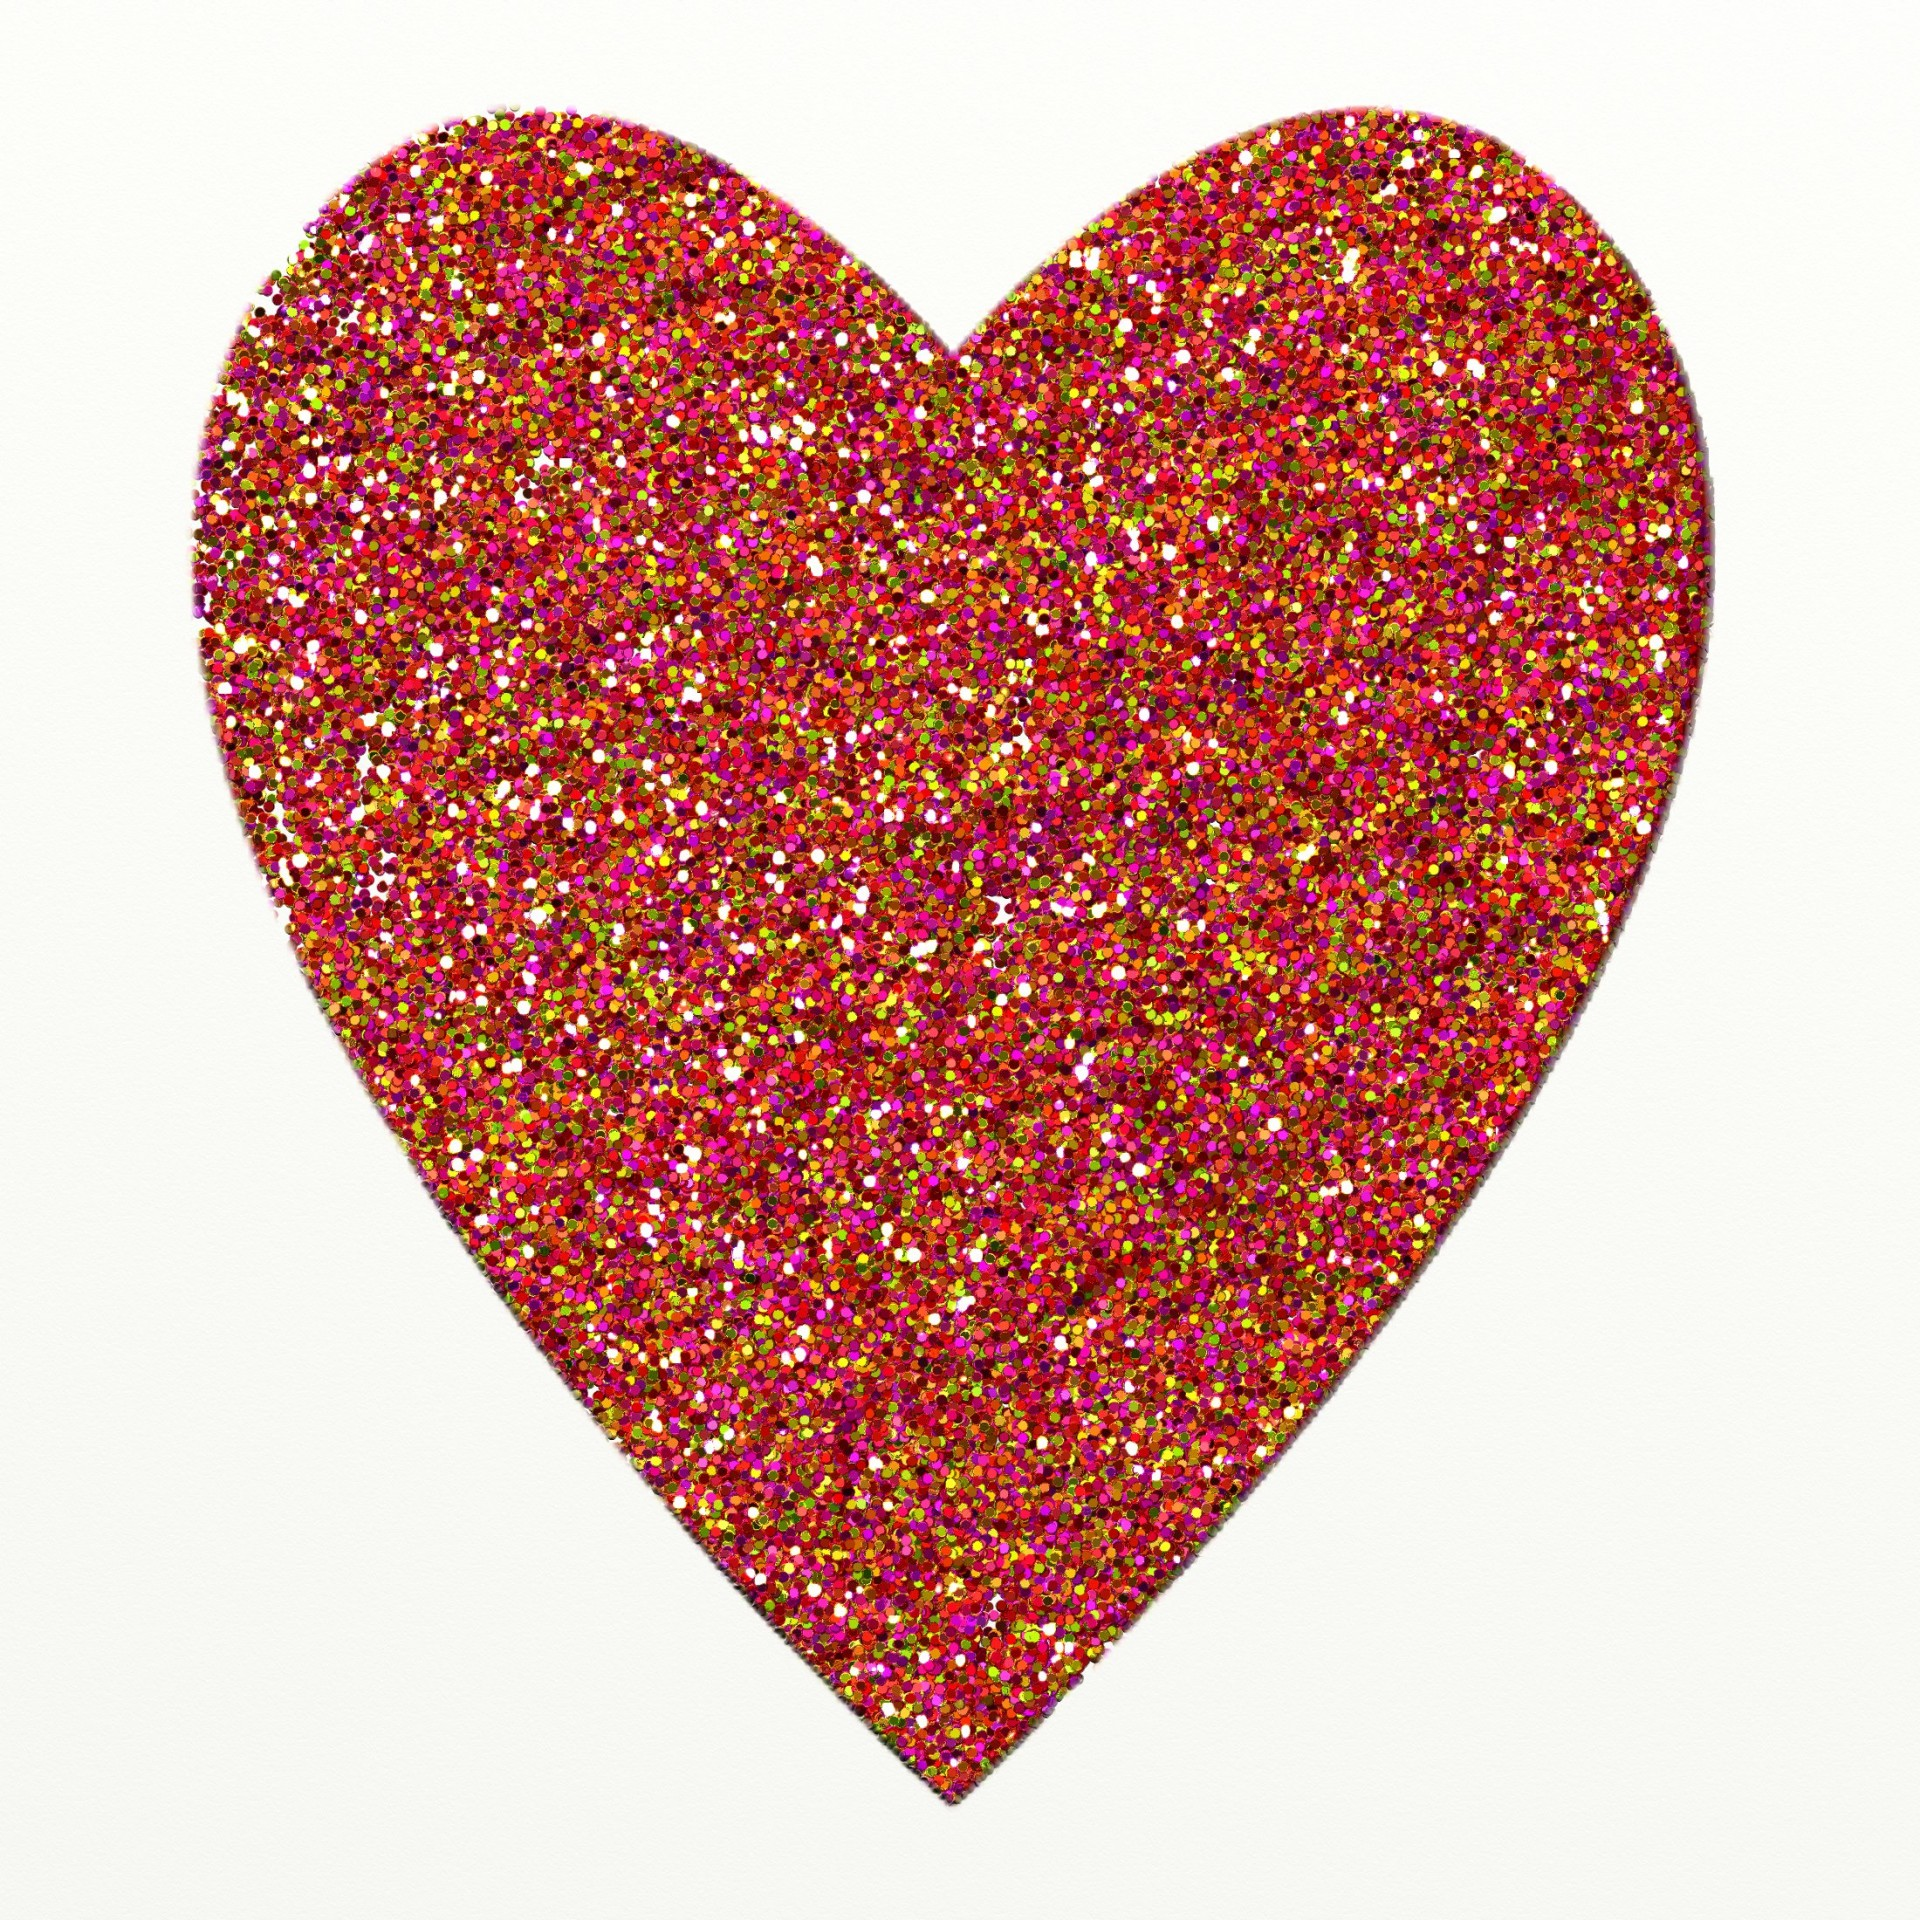 Glitter clipart #1, Download drawings